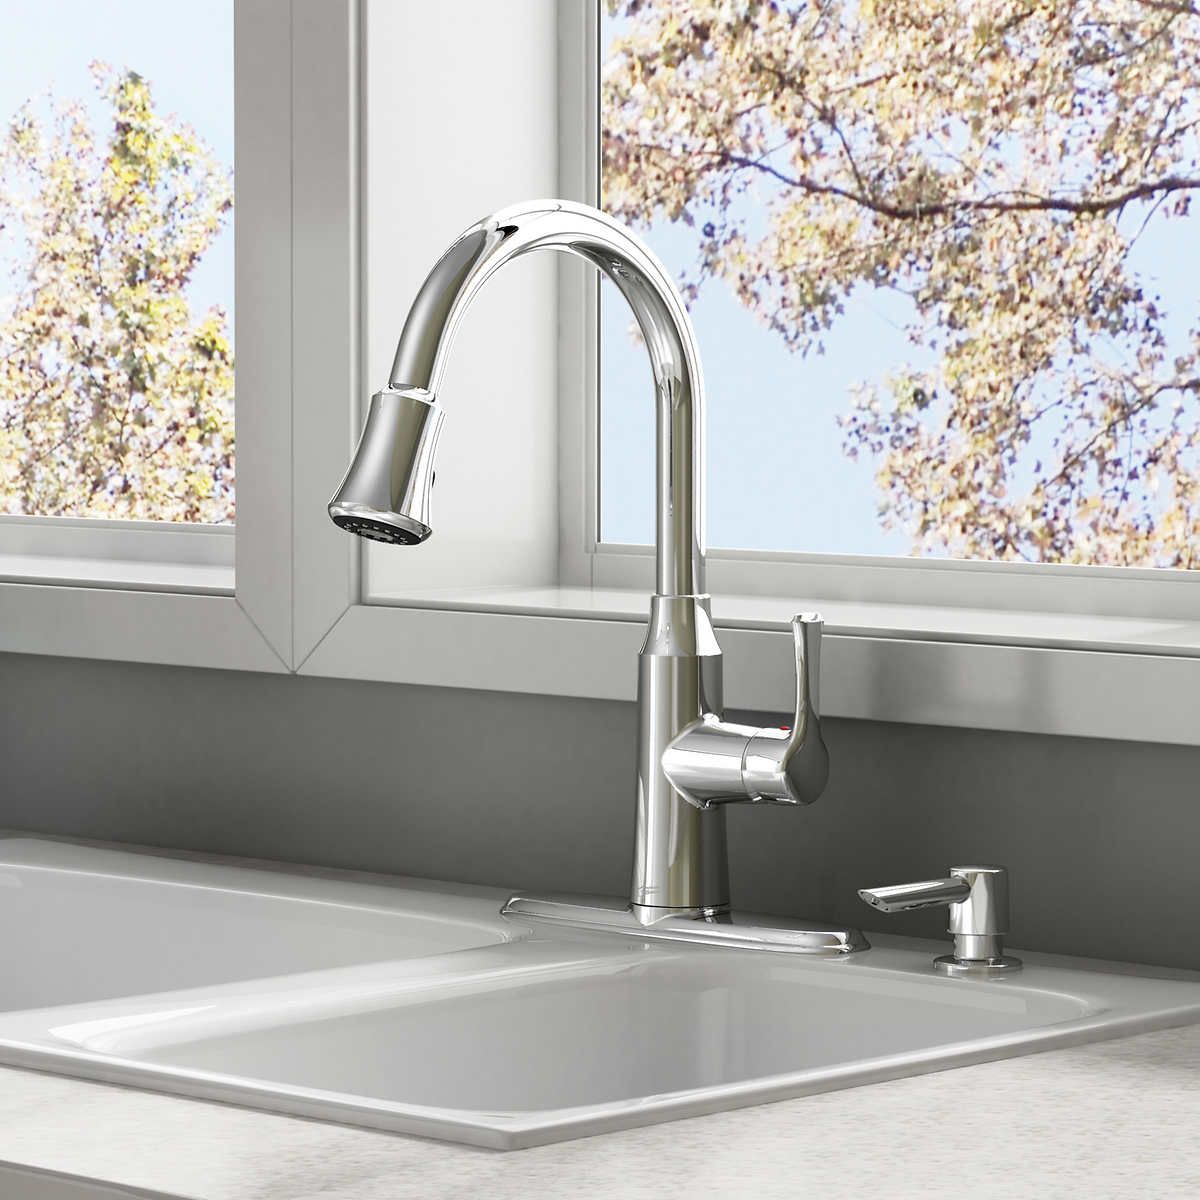 Costco American Standard Danao Pull Down Kitchen Faucet 120 Back Ordered And Is Expected To Ship Between July 27 31 Kitchen Faucet Faucet American Standard